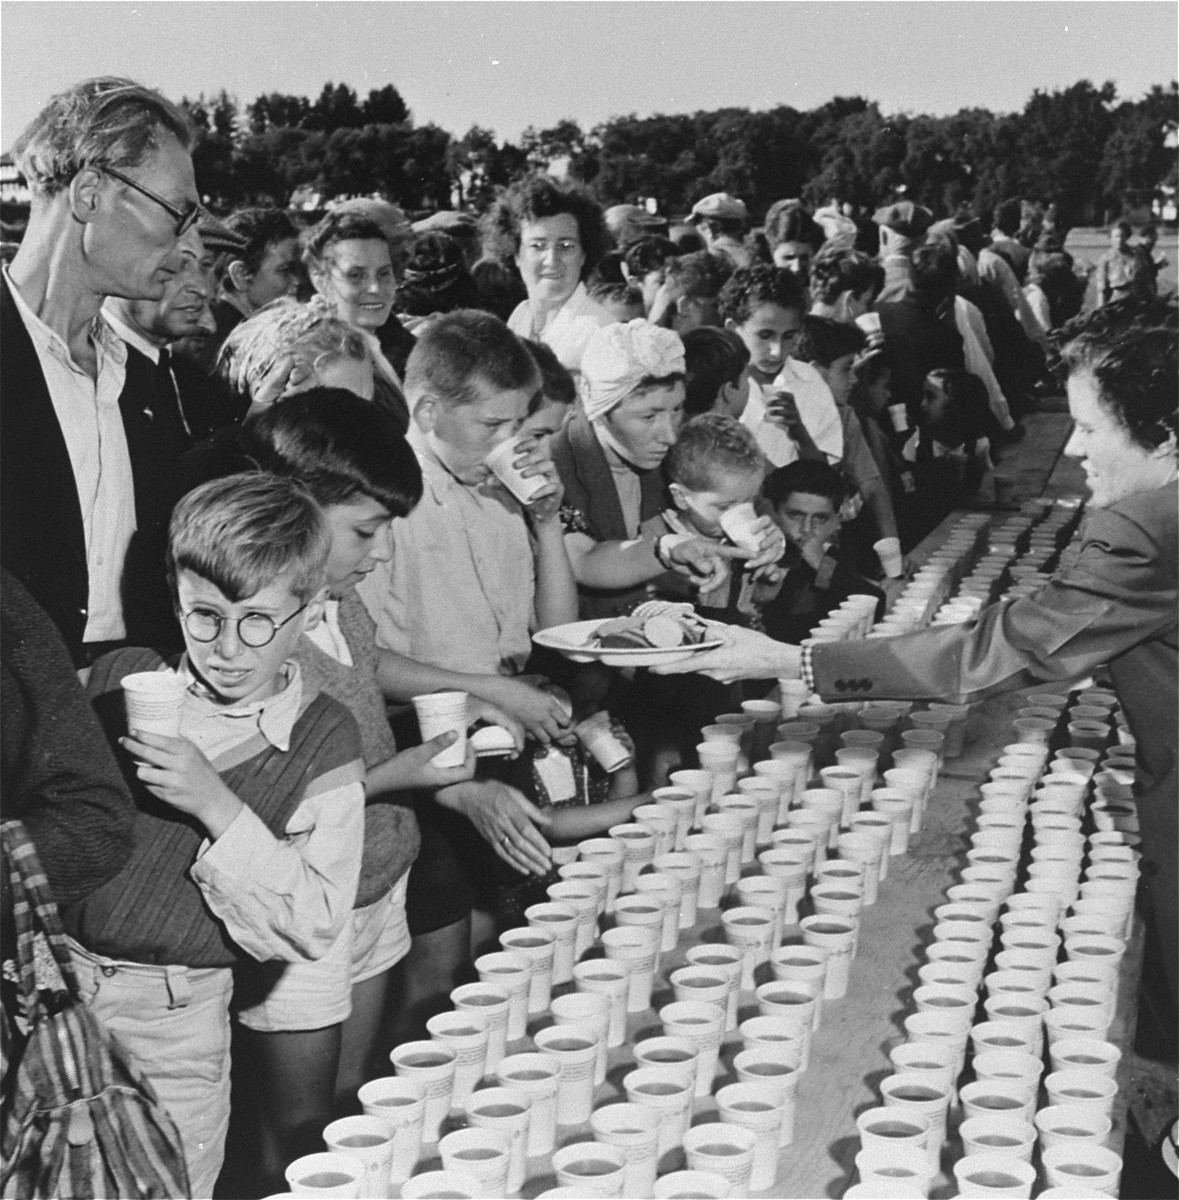 Newly arrived refugees receive food and drink at a picnic at Fort Ontario in Oswego, New York.